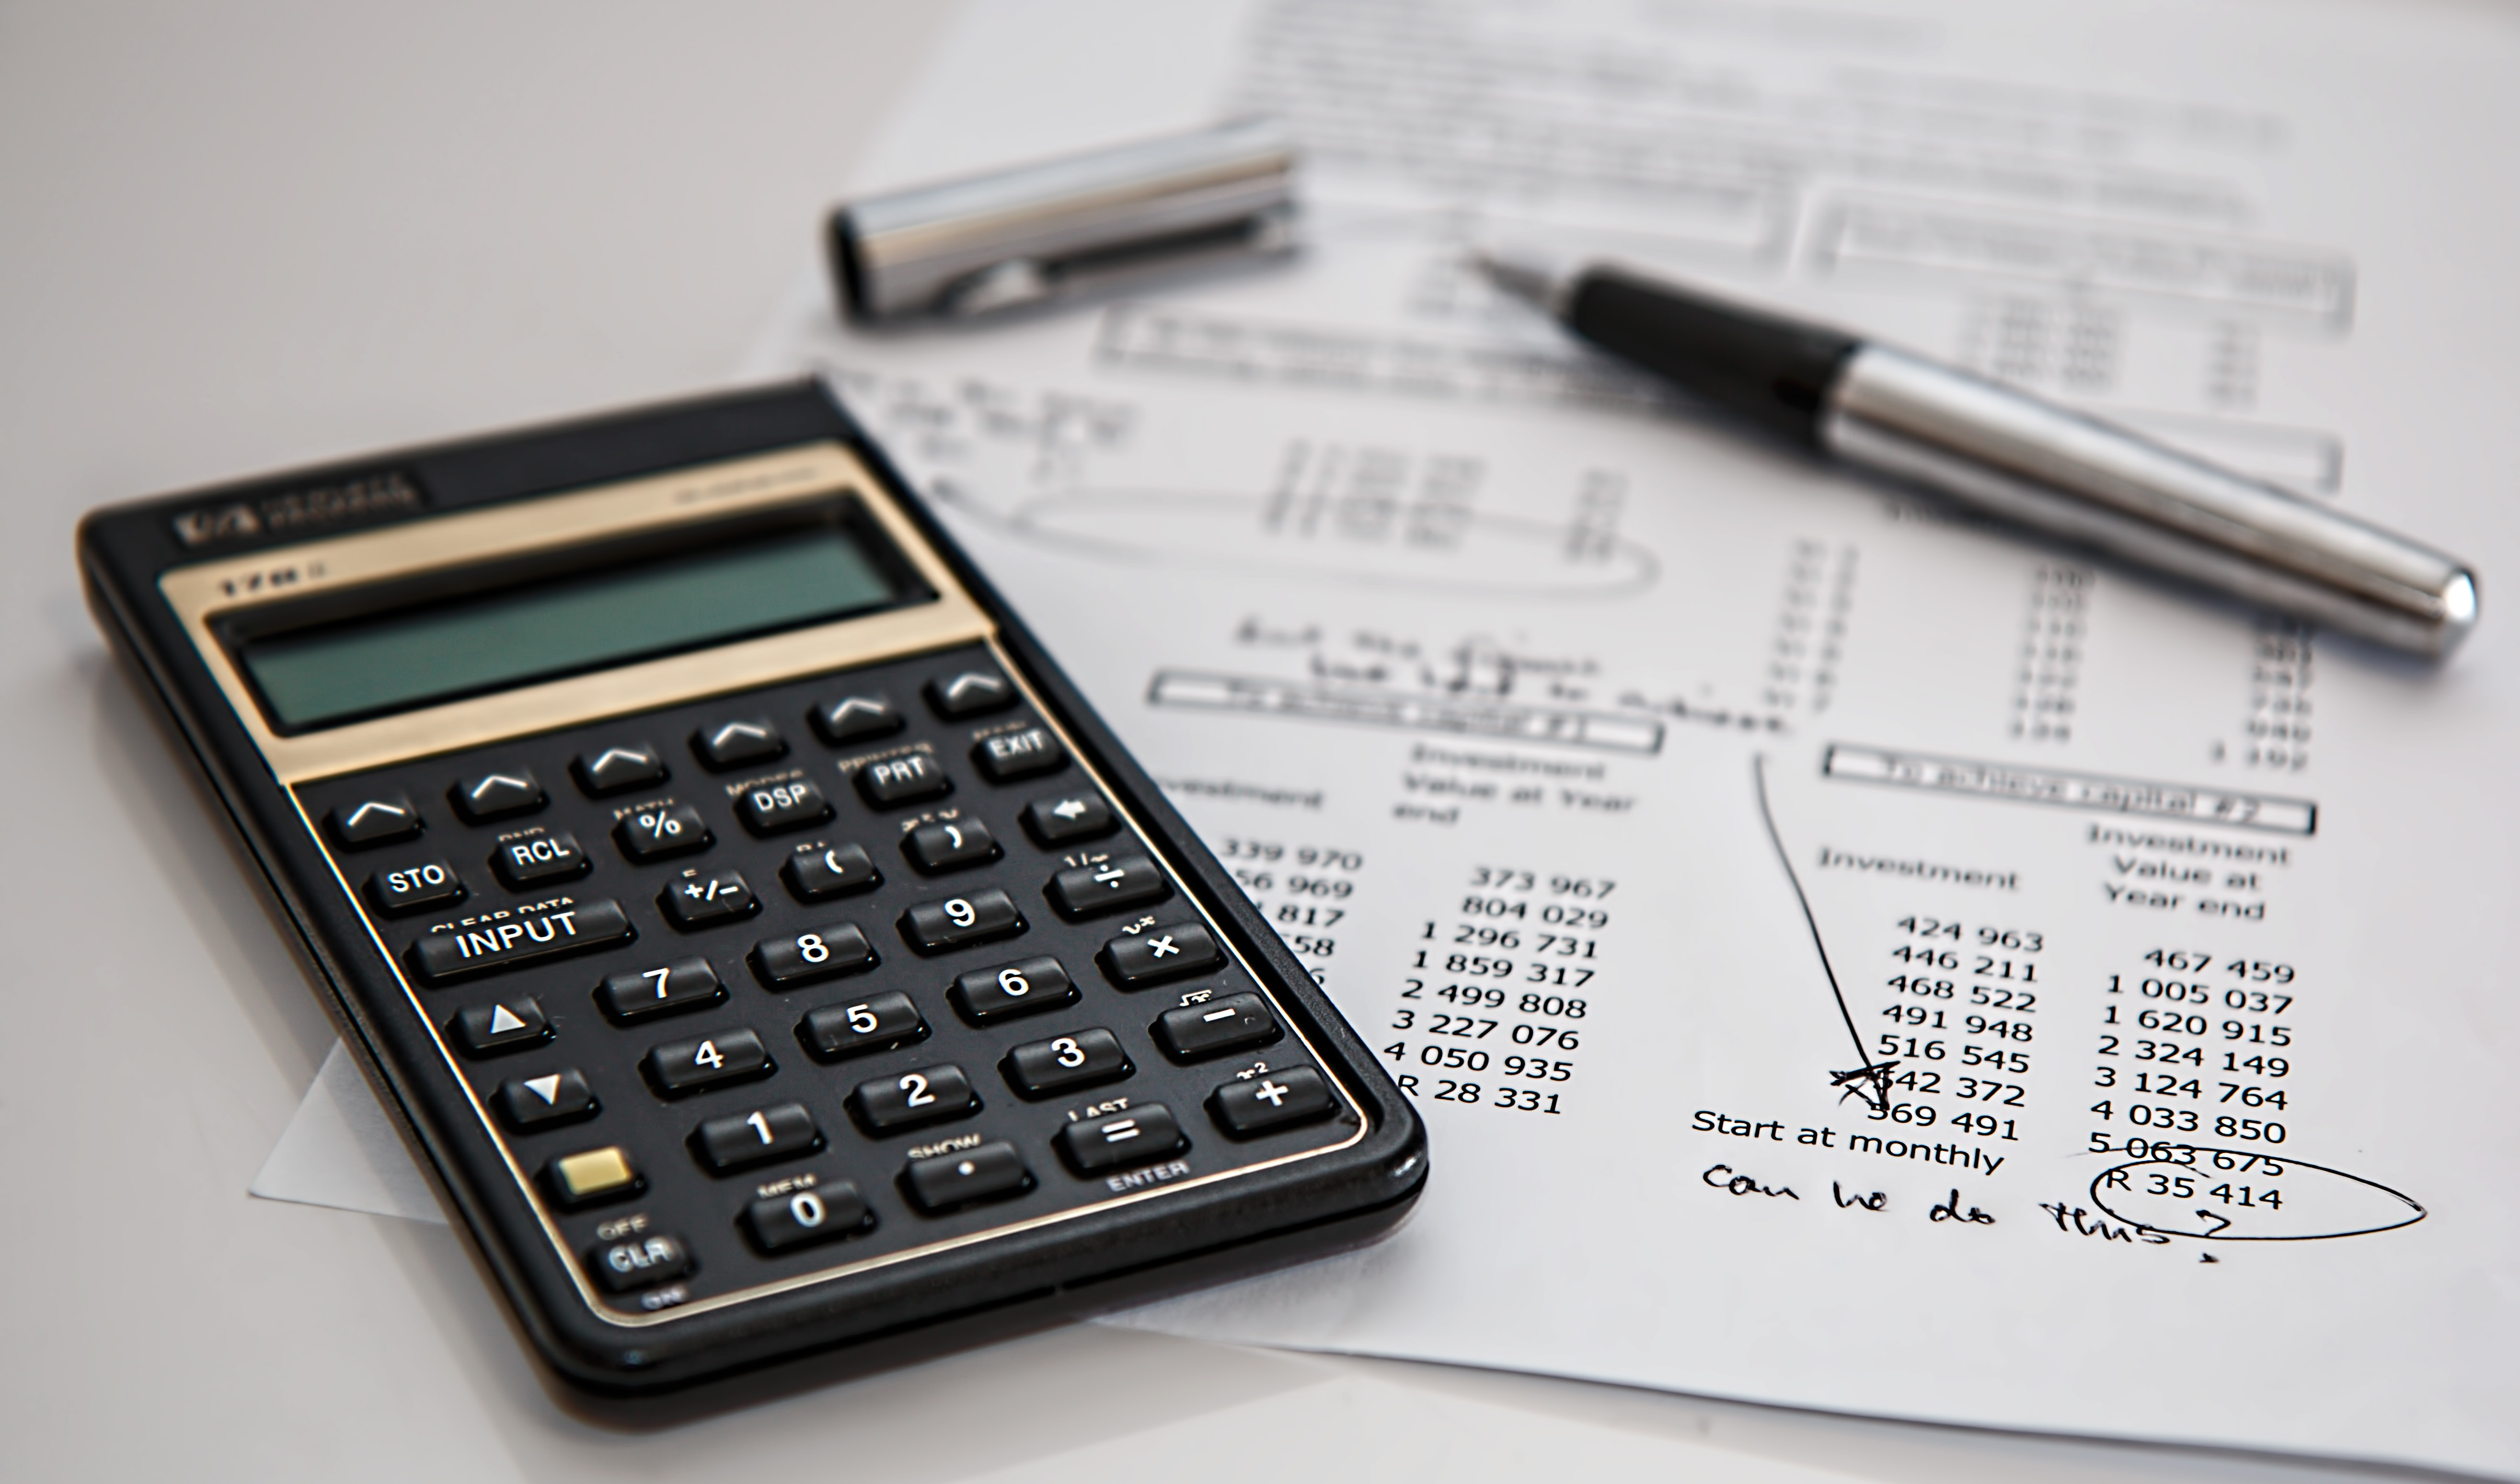 image of calculator on top of a pile of finance paperwork